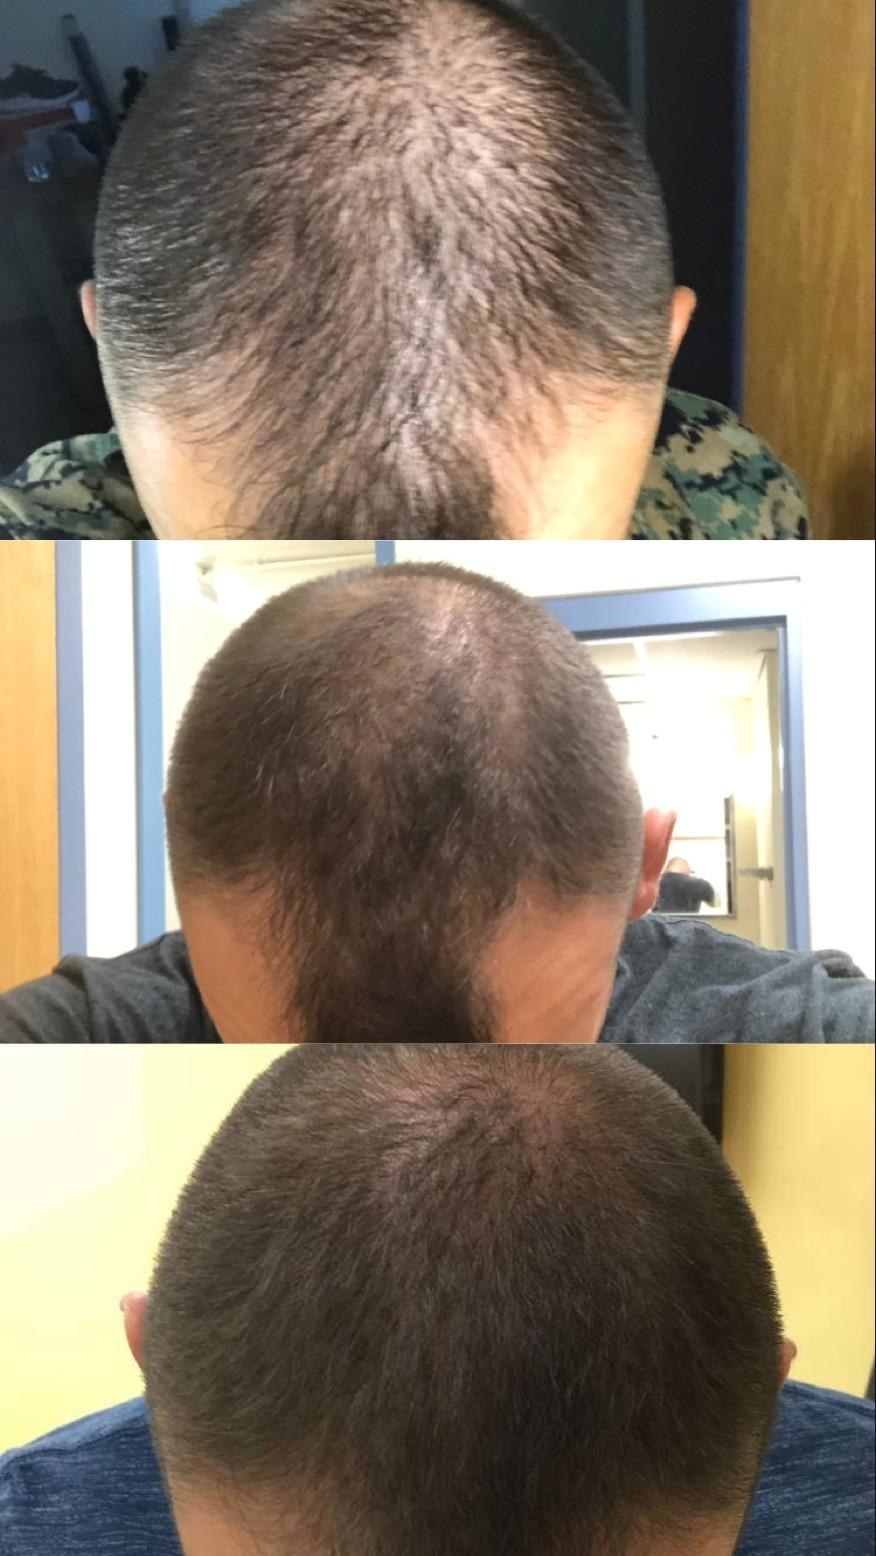 a photo showing someone going from balding to thicker hair